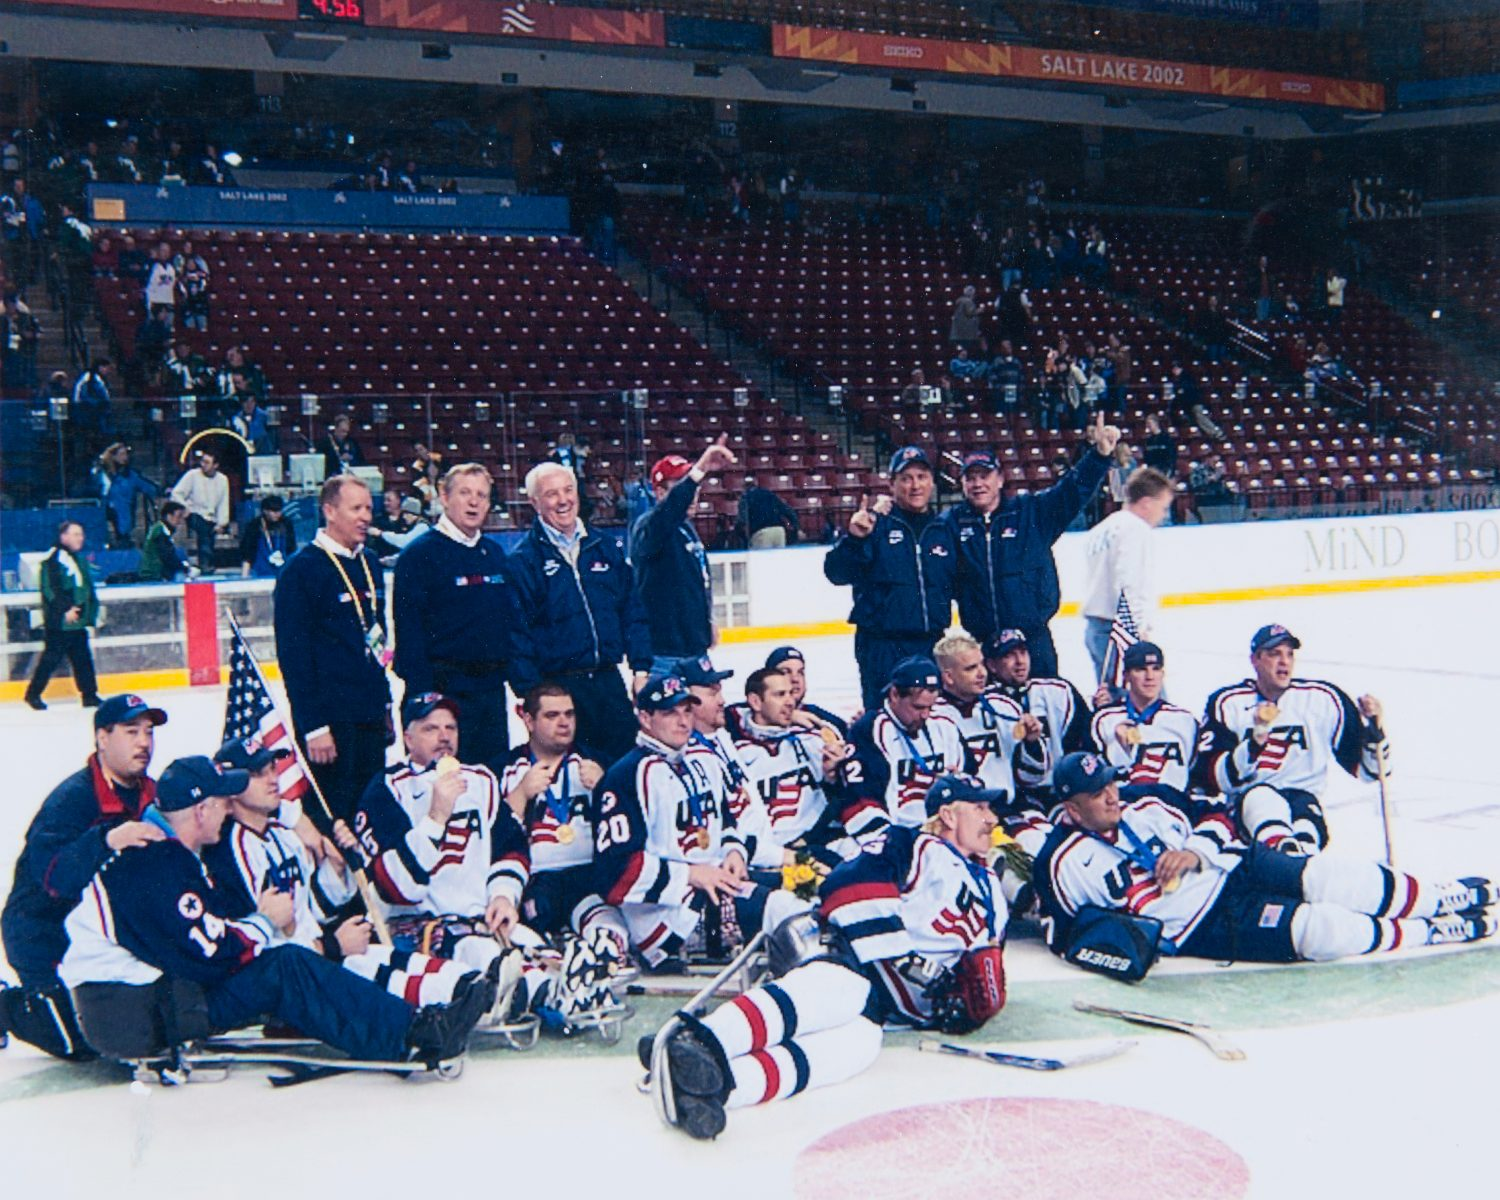 Tough Sledding – The story of the 2002 U.S. Paralympic Sled Hockey Team